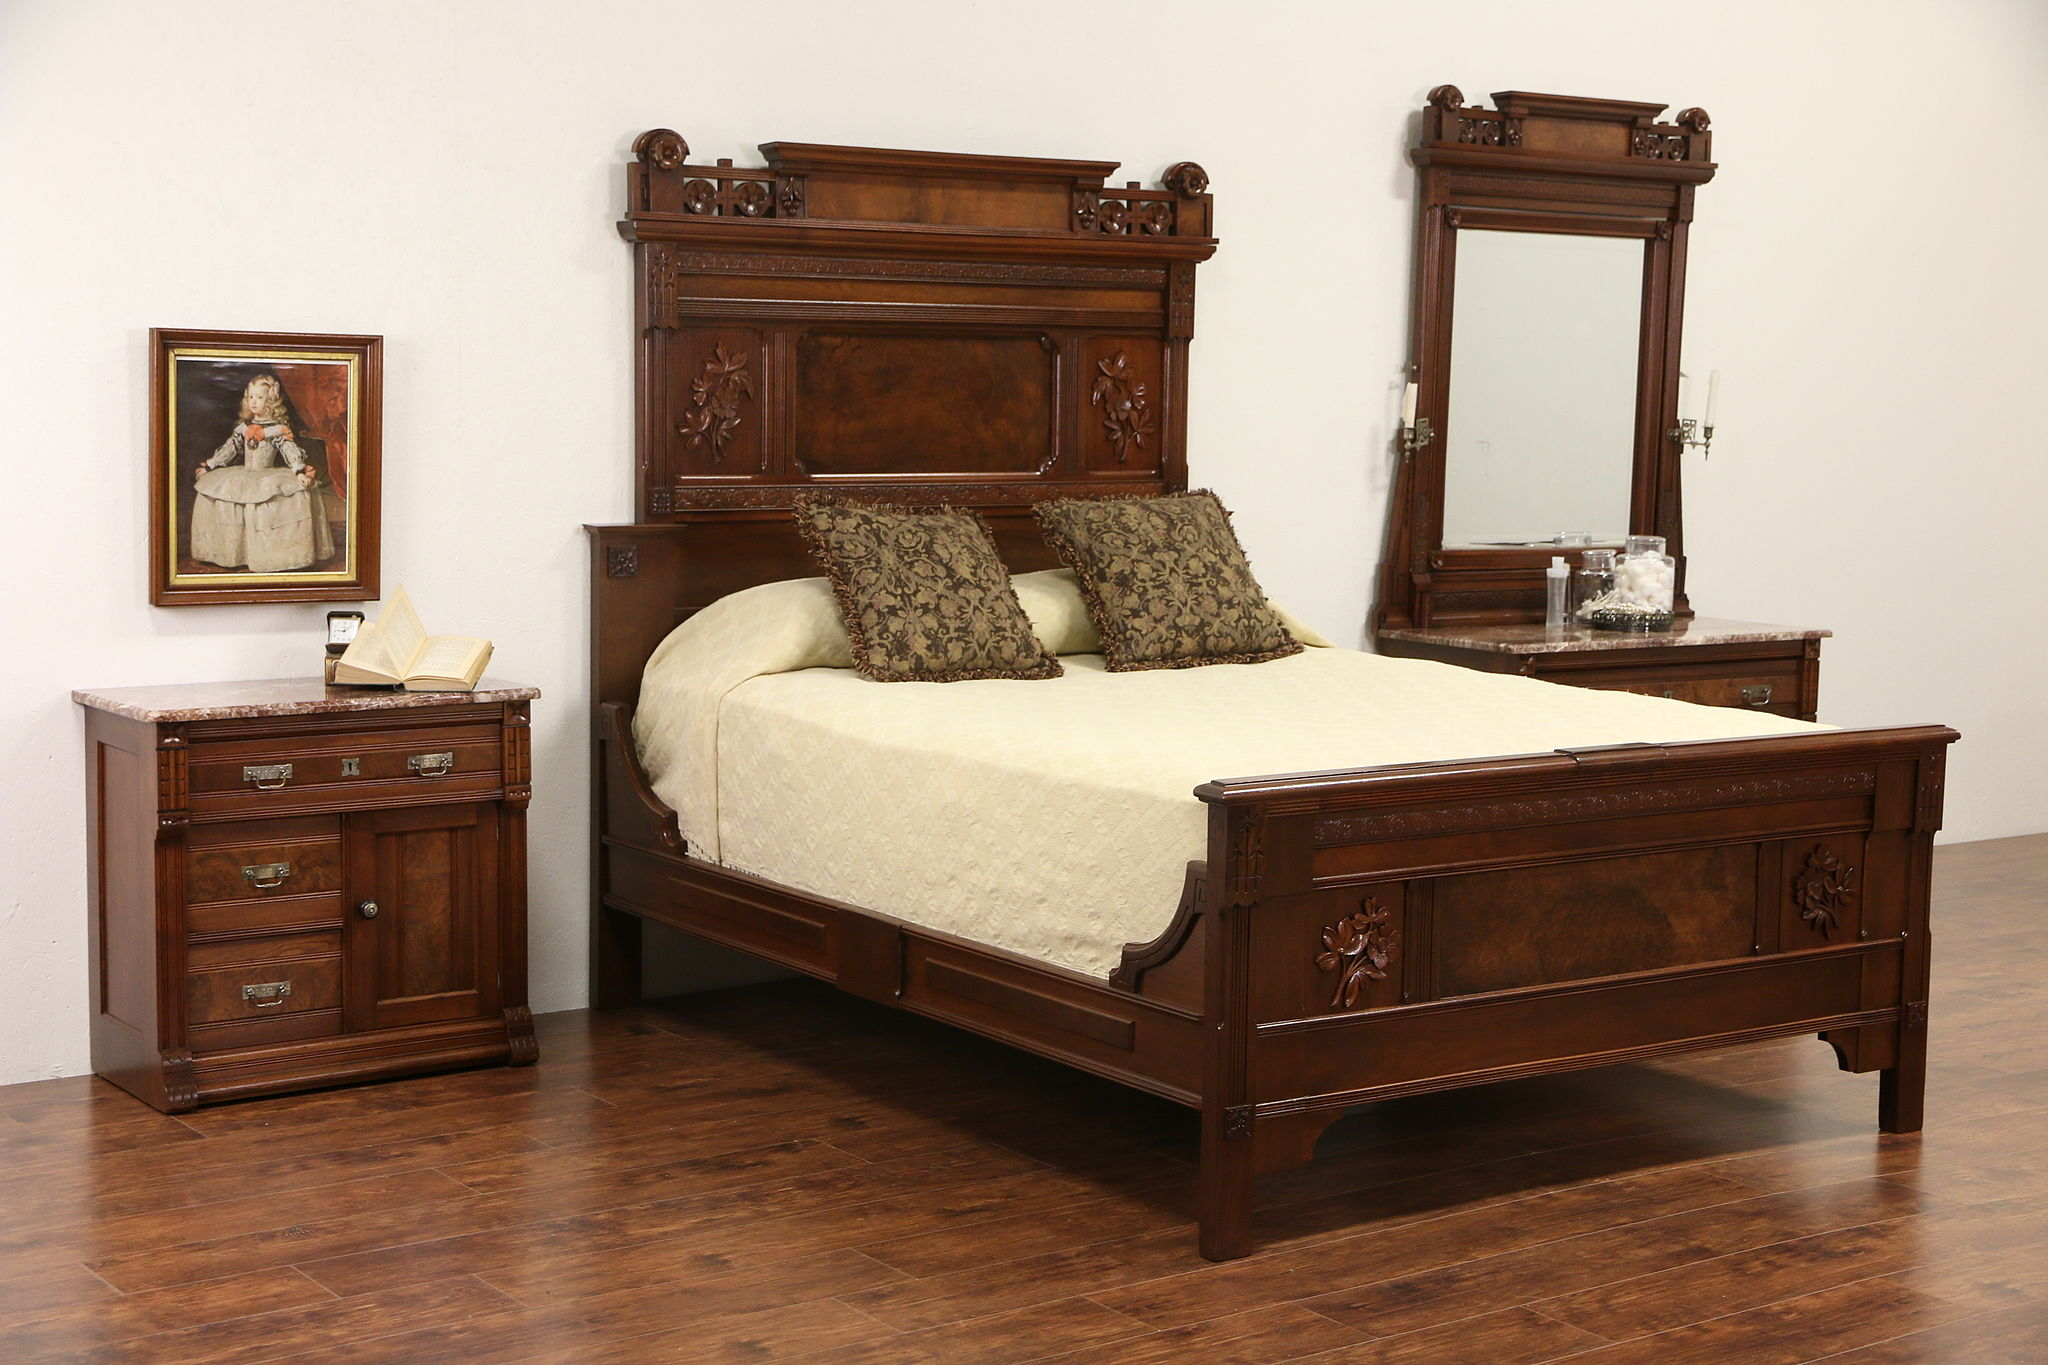 sold victorian eastlake 1880 39 s queen size 3 pc walnut